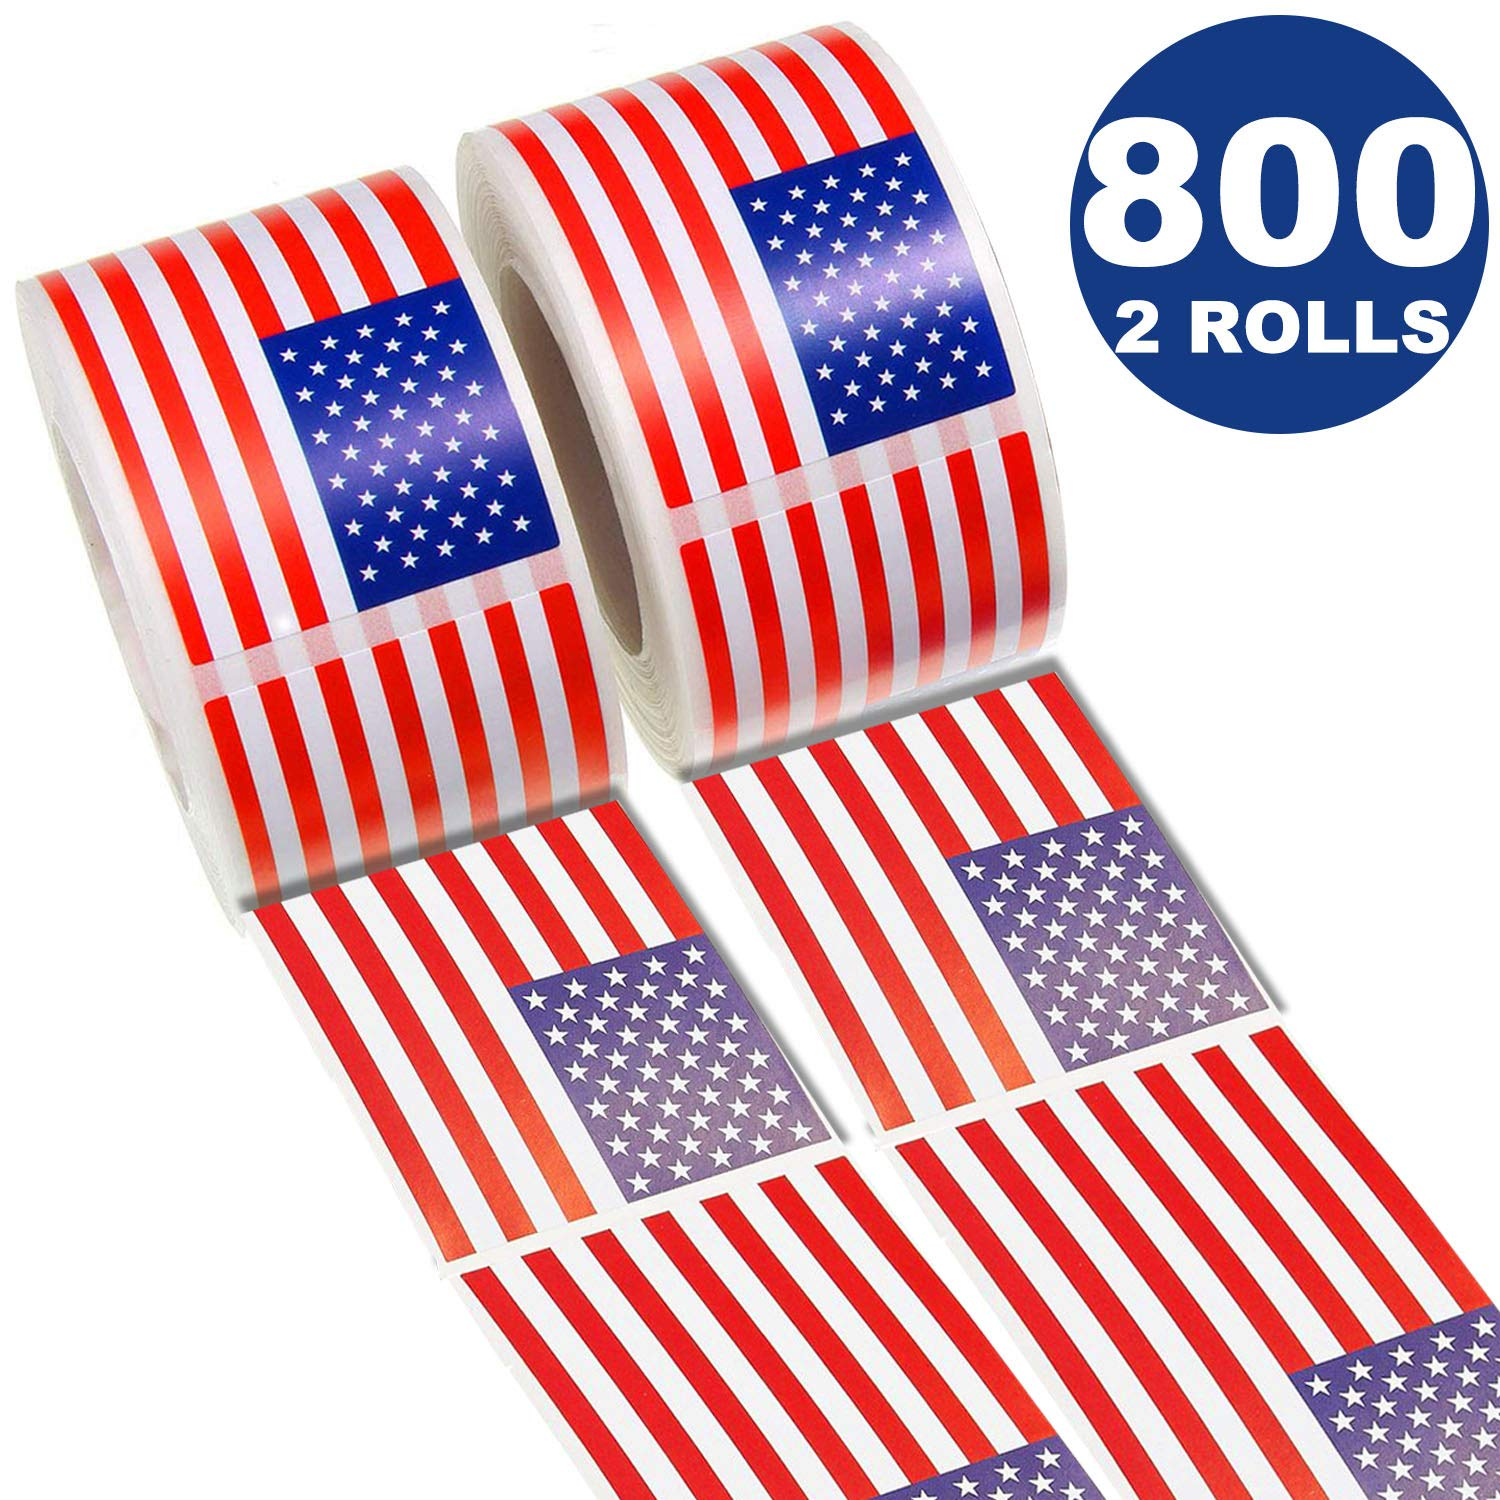 Teacher Reward 3 Rolls/1-3//5 Inch American Flag Suitcase Stickers Vinyl Decals,Reusable Roll Sticker for Children Game Prizes OuMuaMua Label Sticker Sheets for Kids Party Favor /& Supplies